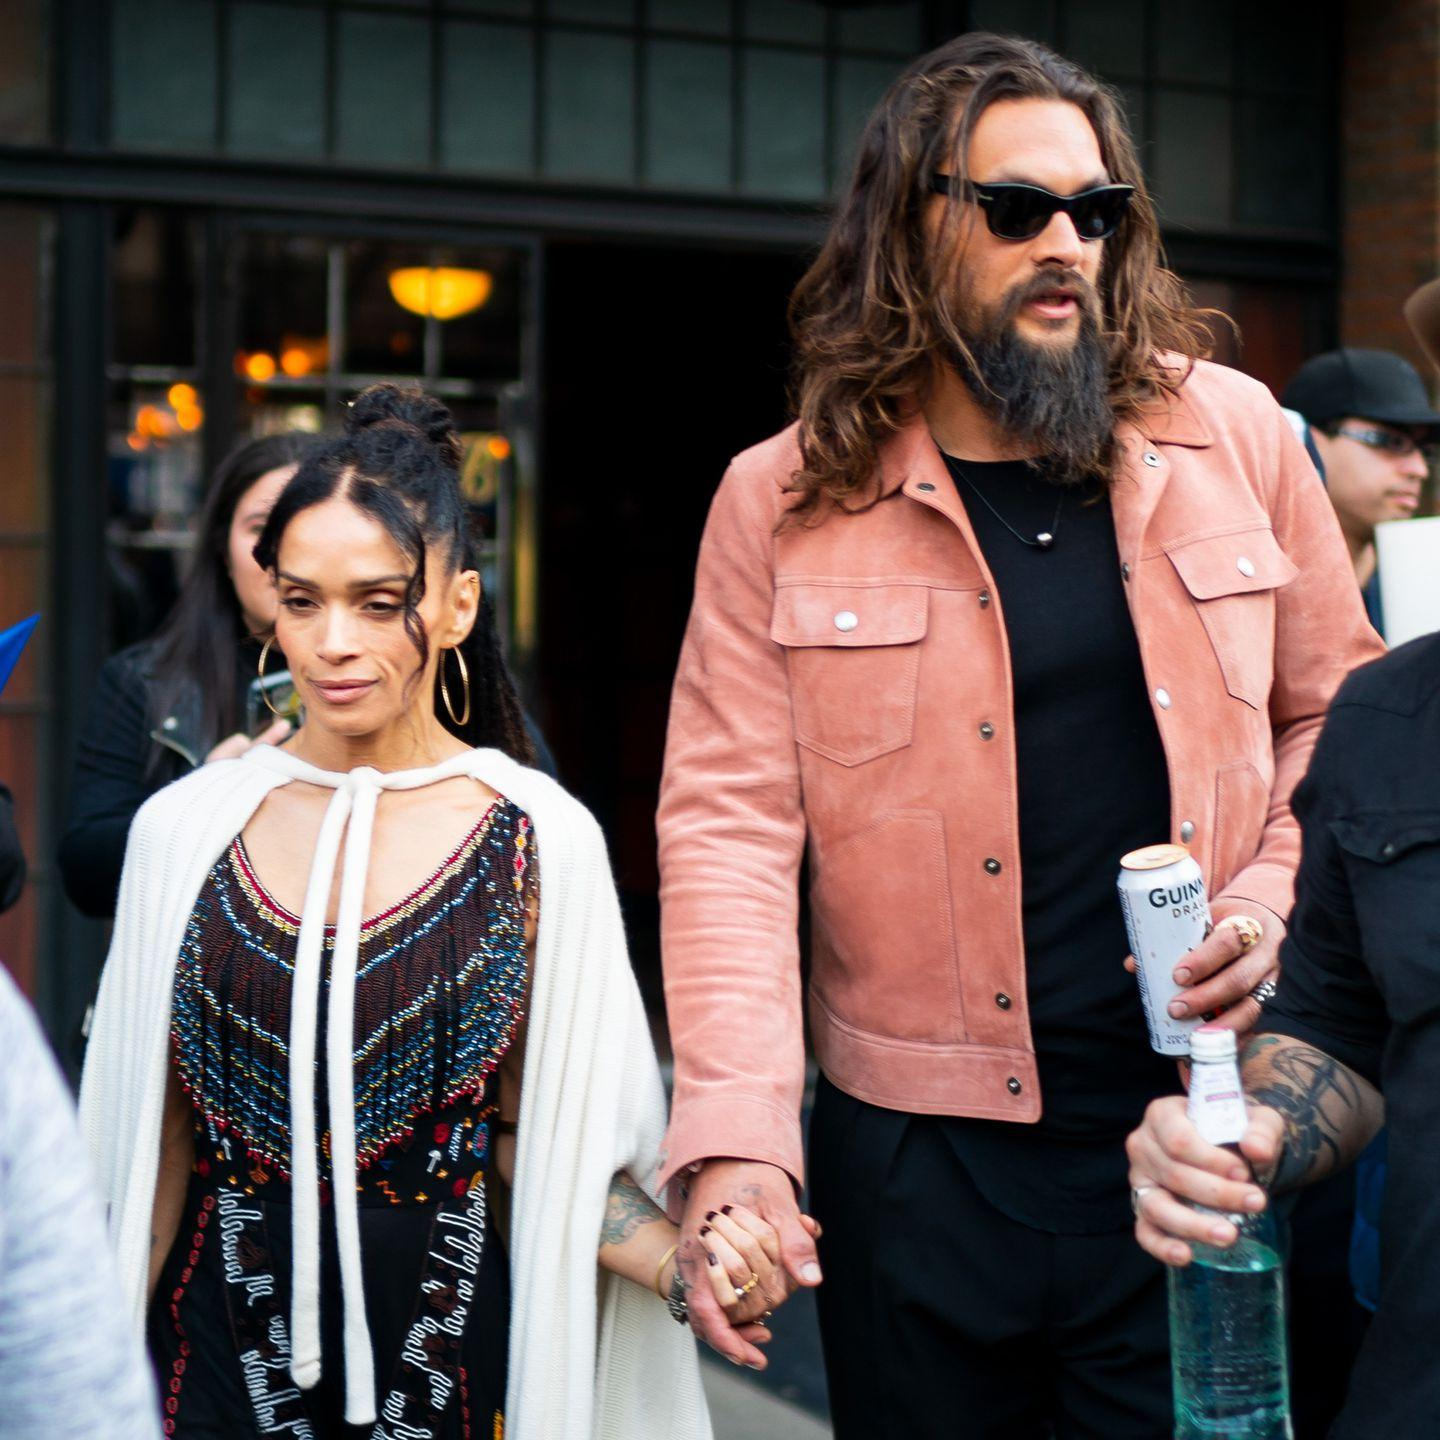 Jason Momoa College: Jason Momoa Showed Up With A Can Of Guinness To The 'Game